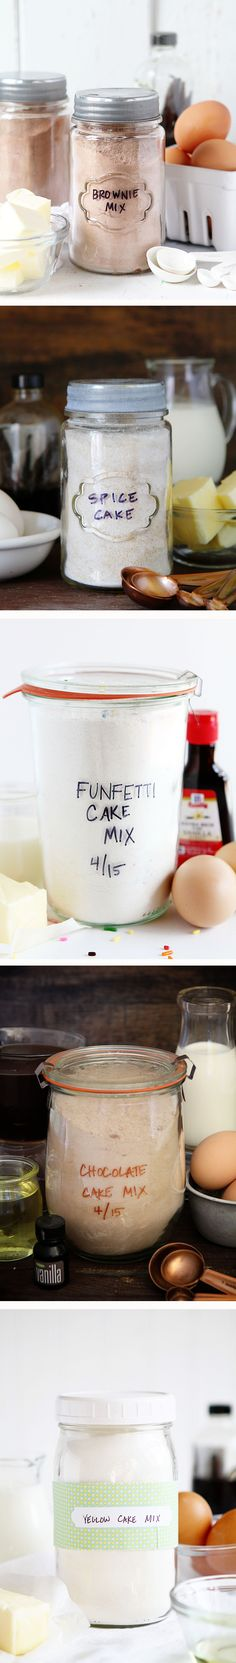 Every Homemade Cake Mix you could ever want! DITCH THE BOX!